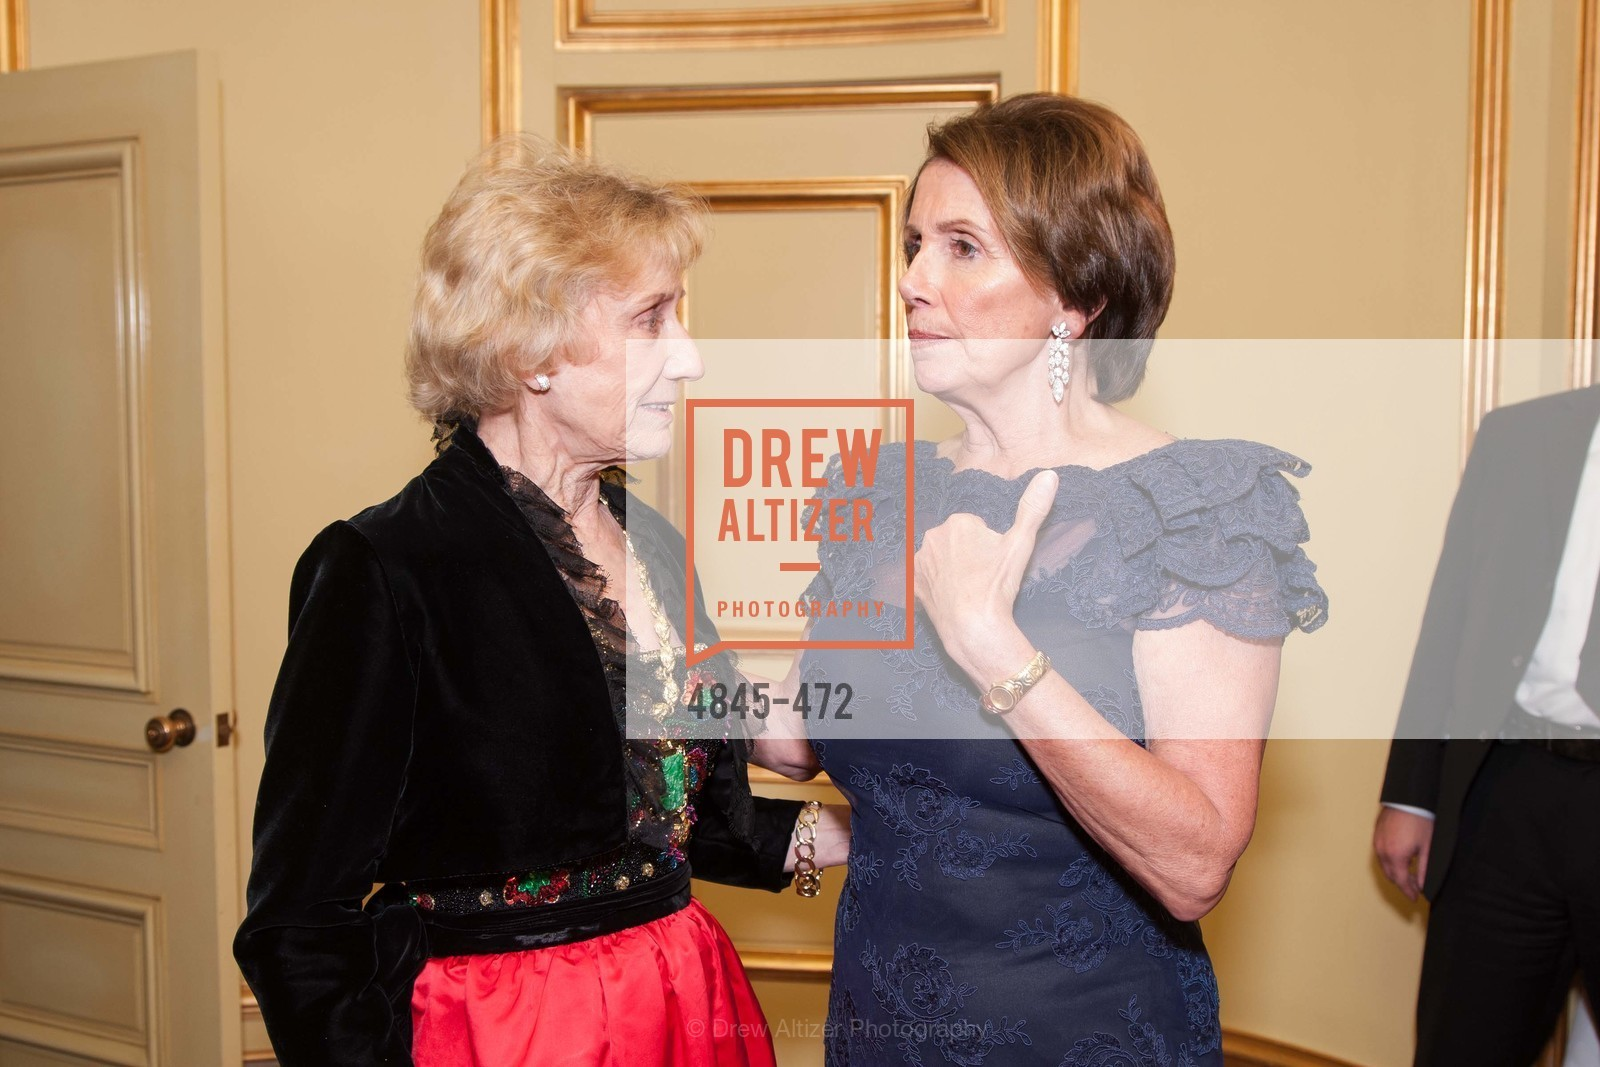 Nancy Bechtle, Nancy Pelosi, SAN FRANCISCO BALLET Opening Night Gala: PHENOMENAL - Intermission & Dinner, US. SF City Hall, January 22nd, 2014,Drew Altizer, Drew Altizer Photography, full-service agency, private events, San Francisco photographer, photographer california